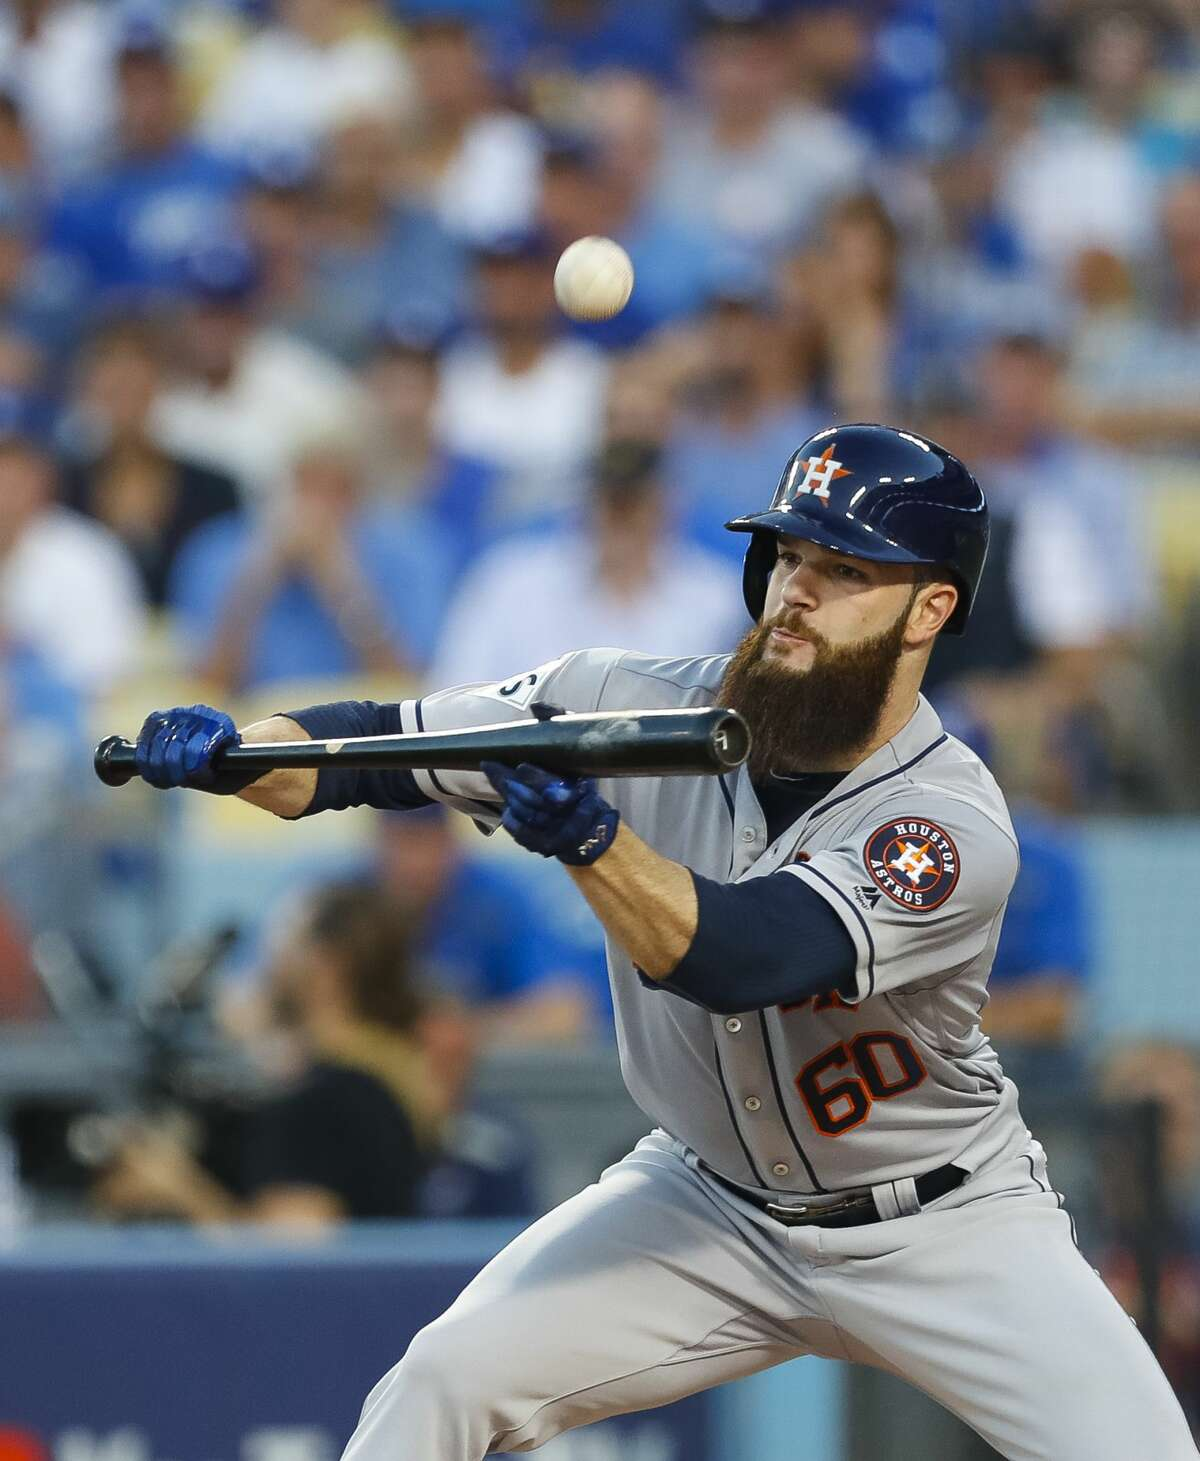 Houston Astros starting pitcher Dallas Keuchel (60) attempts a bunt during the third inning of Game 1 of the World Series at Dodger Stadium on Tuesday, Oct. 24, 2017, in Los Angeles.